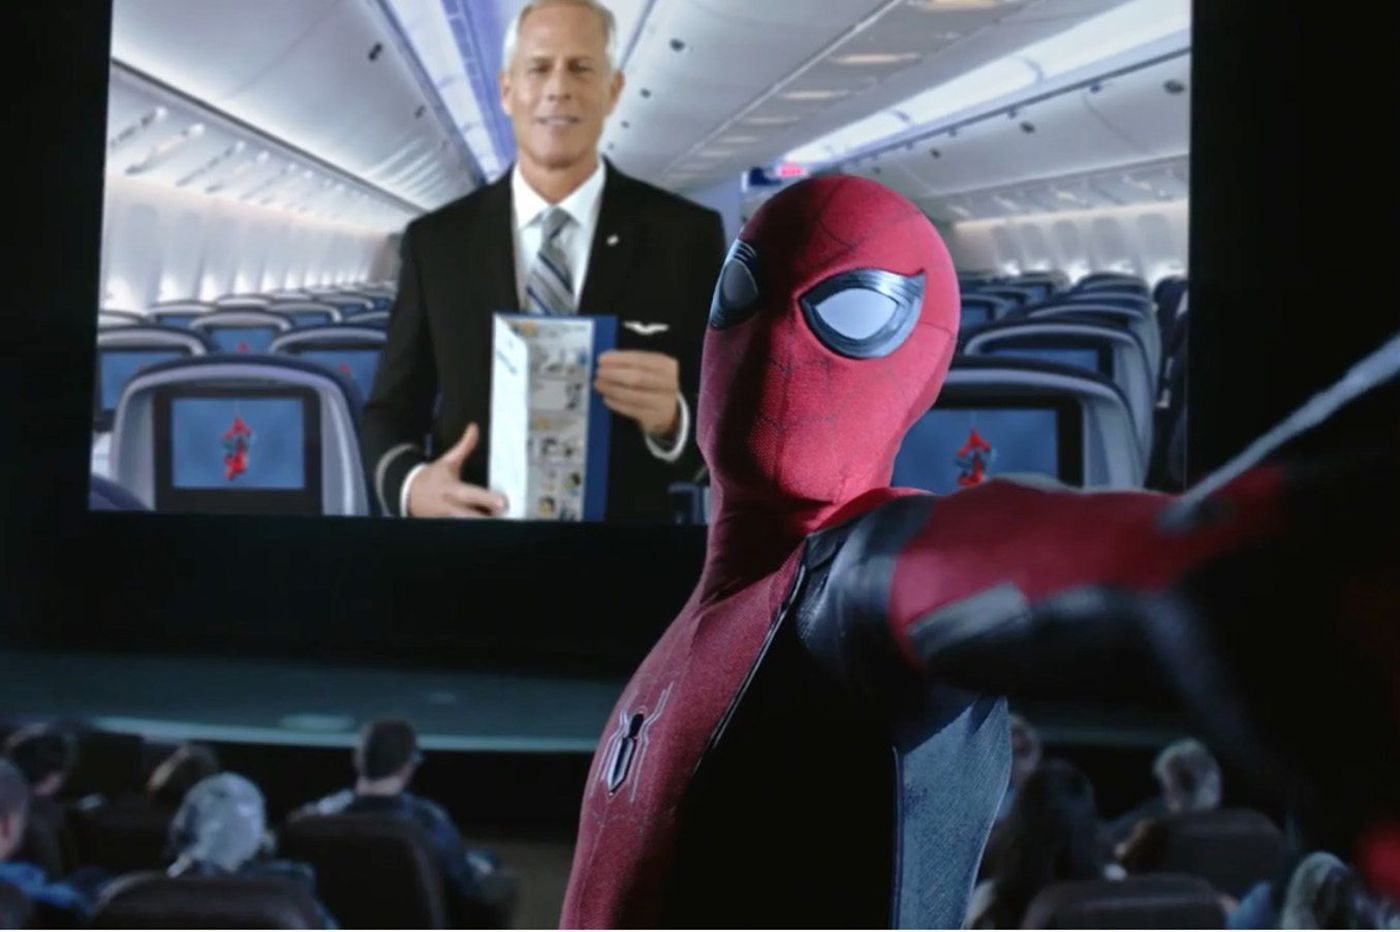 Safety belts, oxygen masks, and Spider-Man: United Airlines' in-flight safety video features an unabashed promotional tie-in.